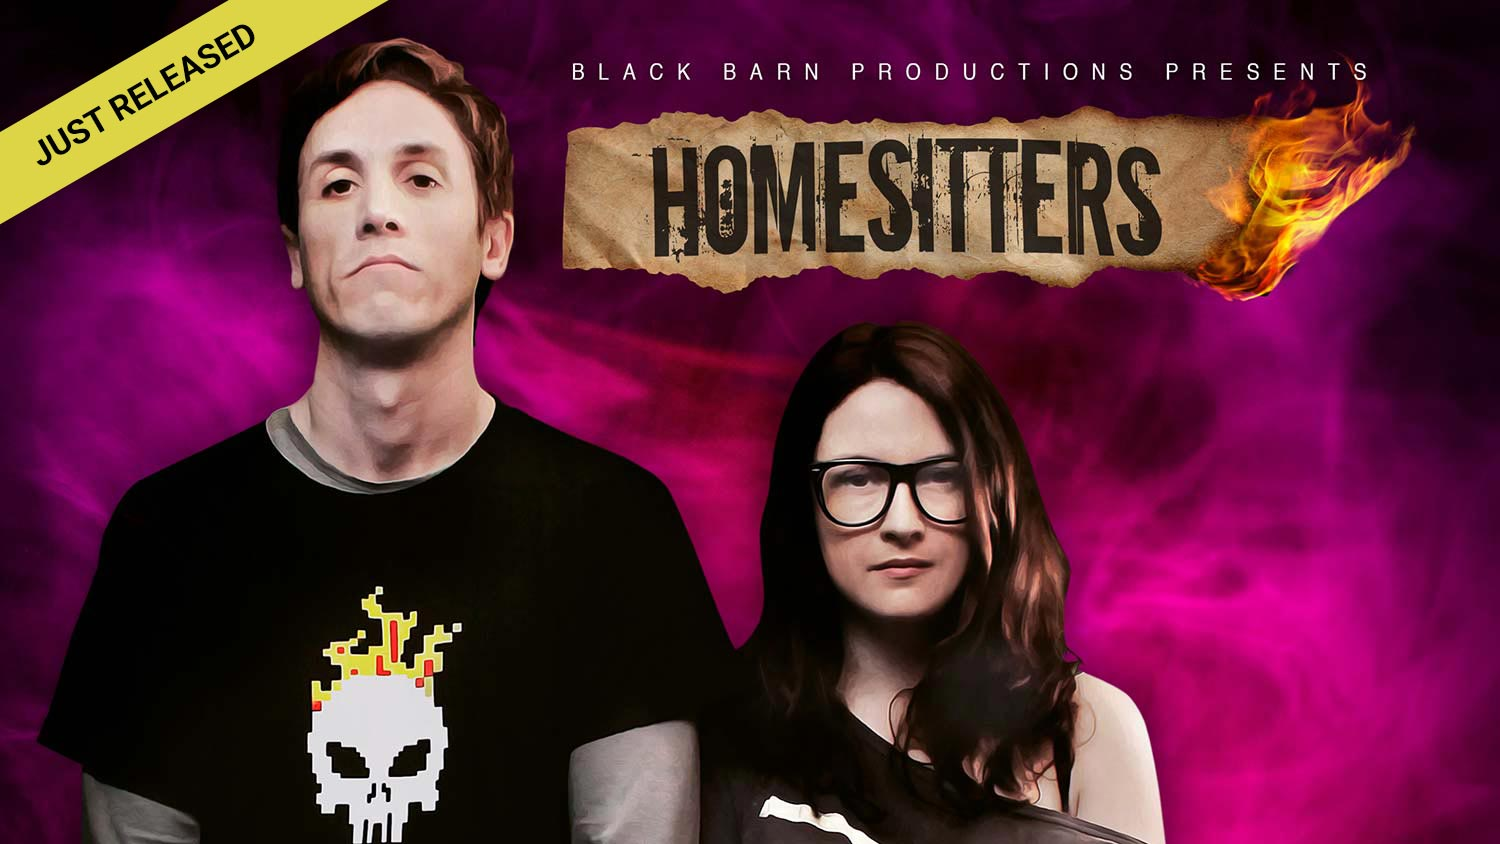 Homesitters film poster released